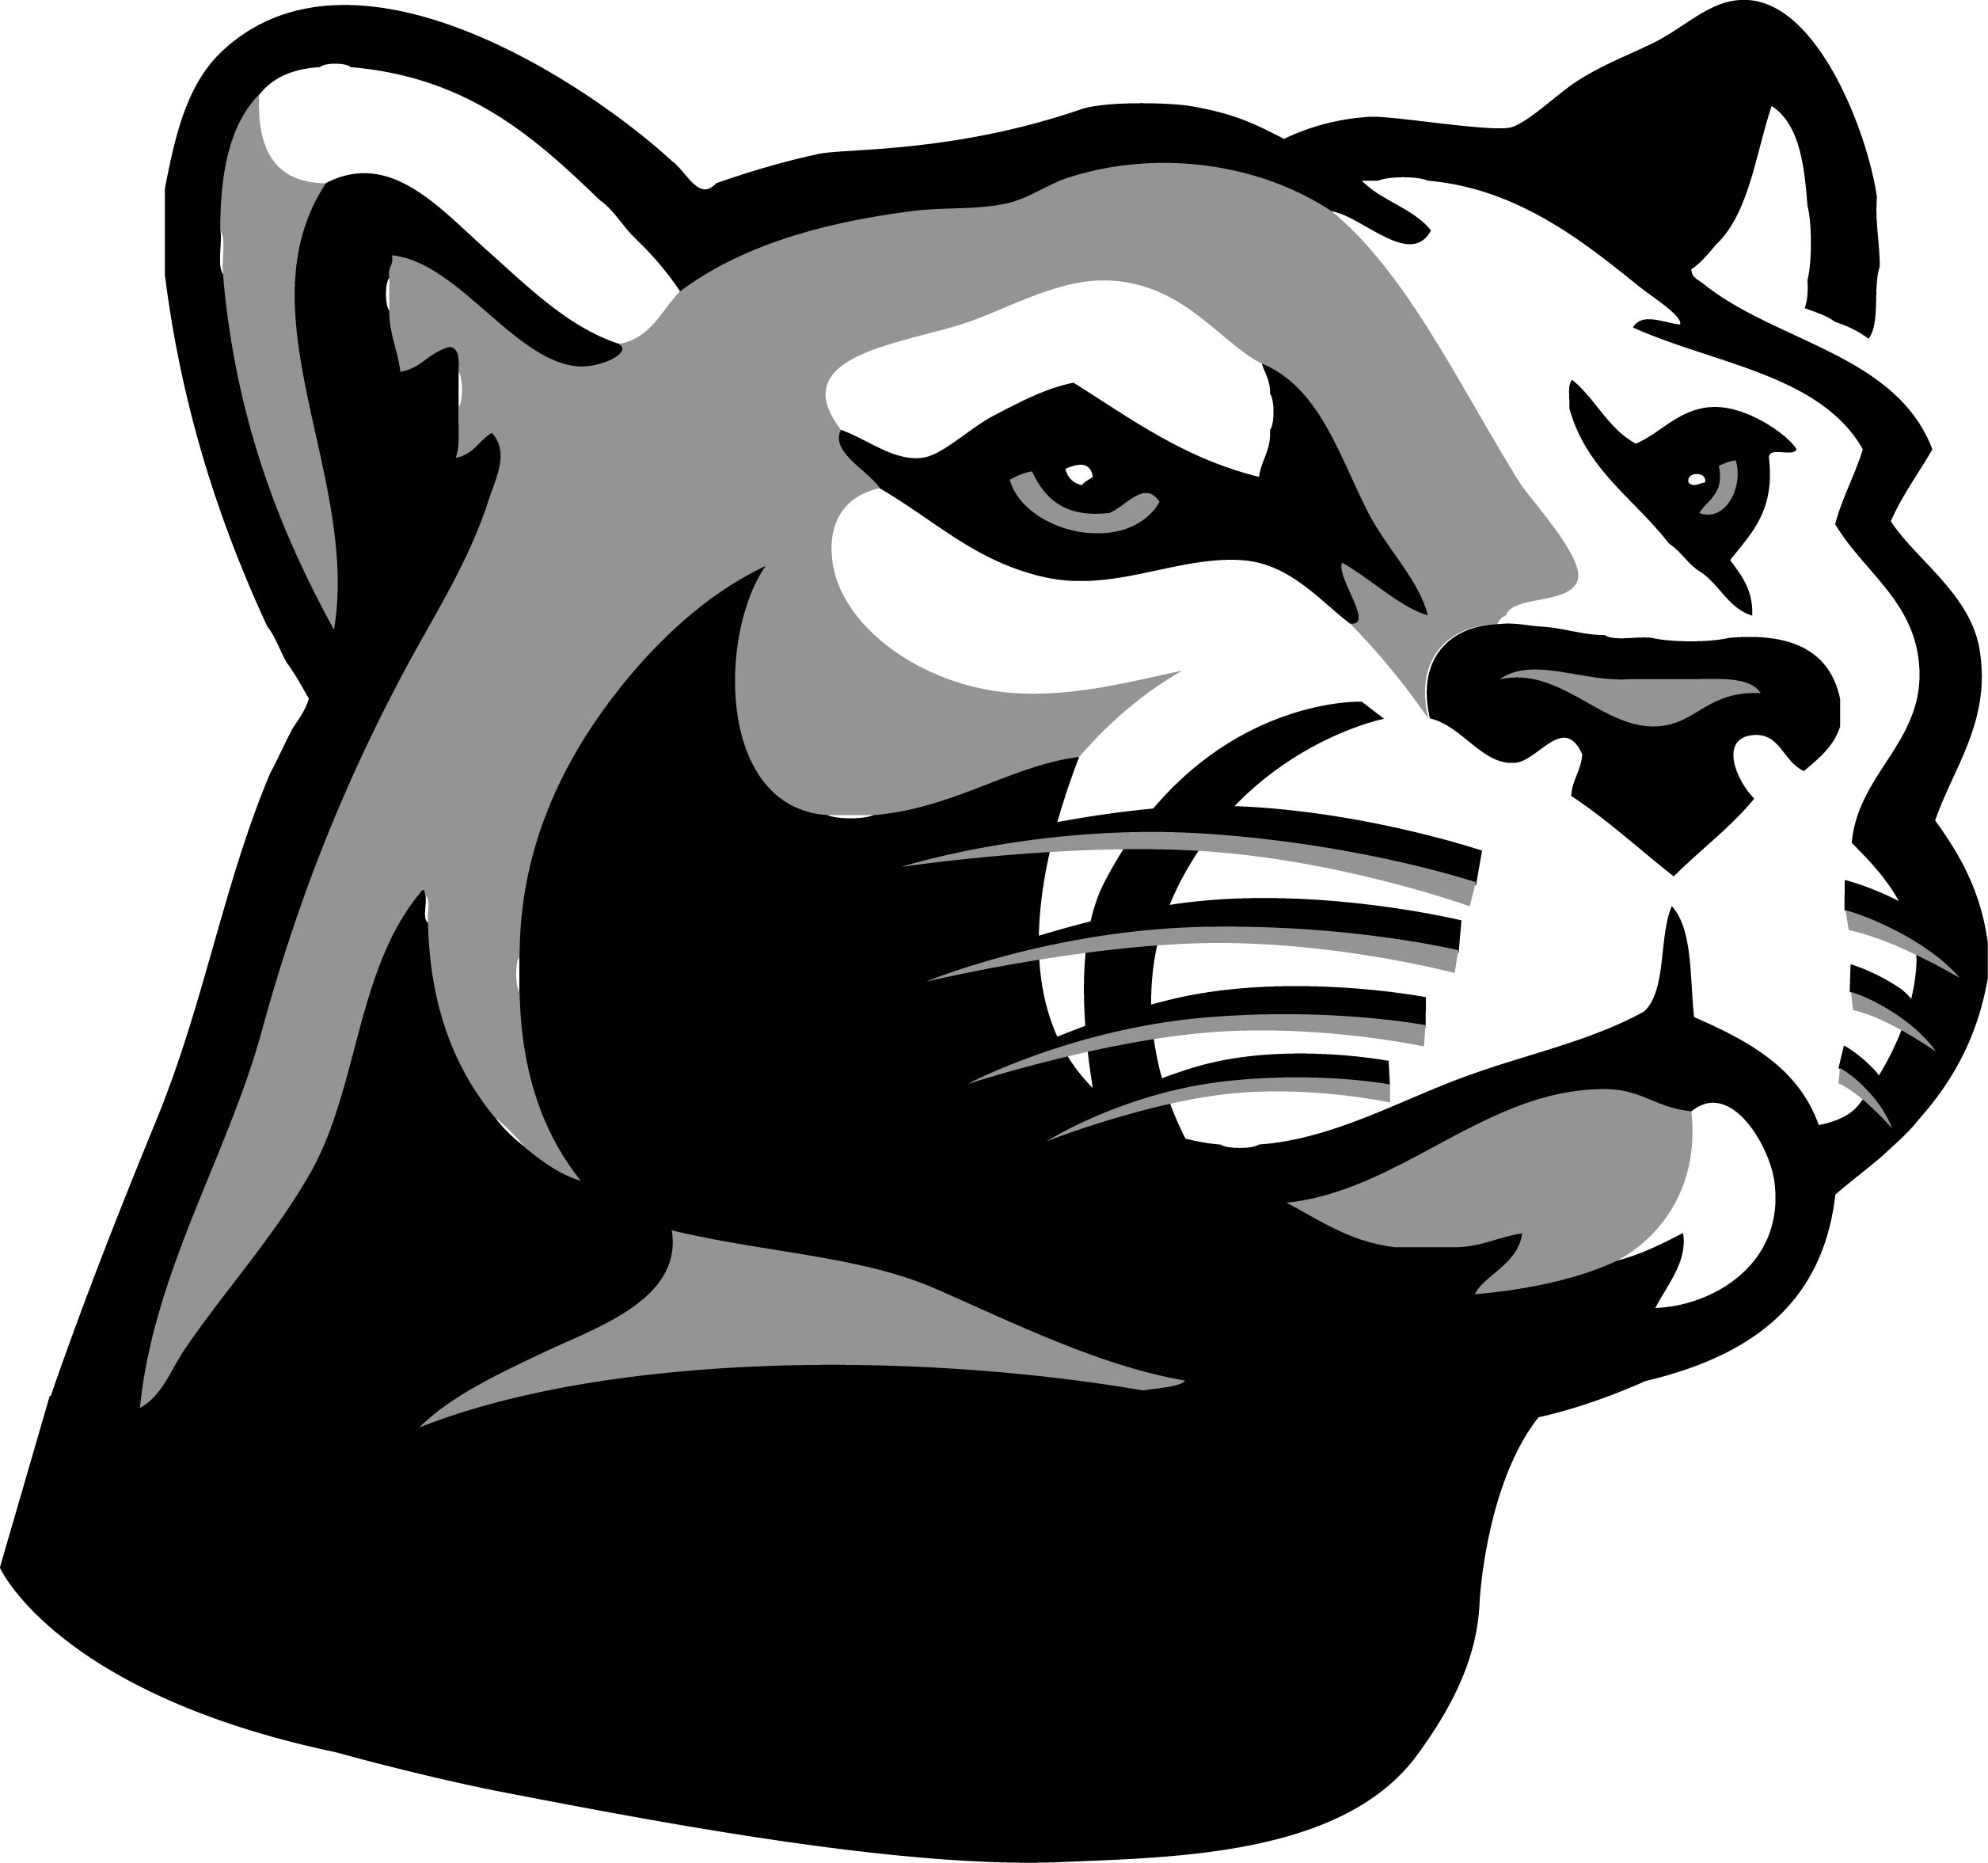 Black Panther clipart #13